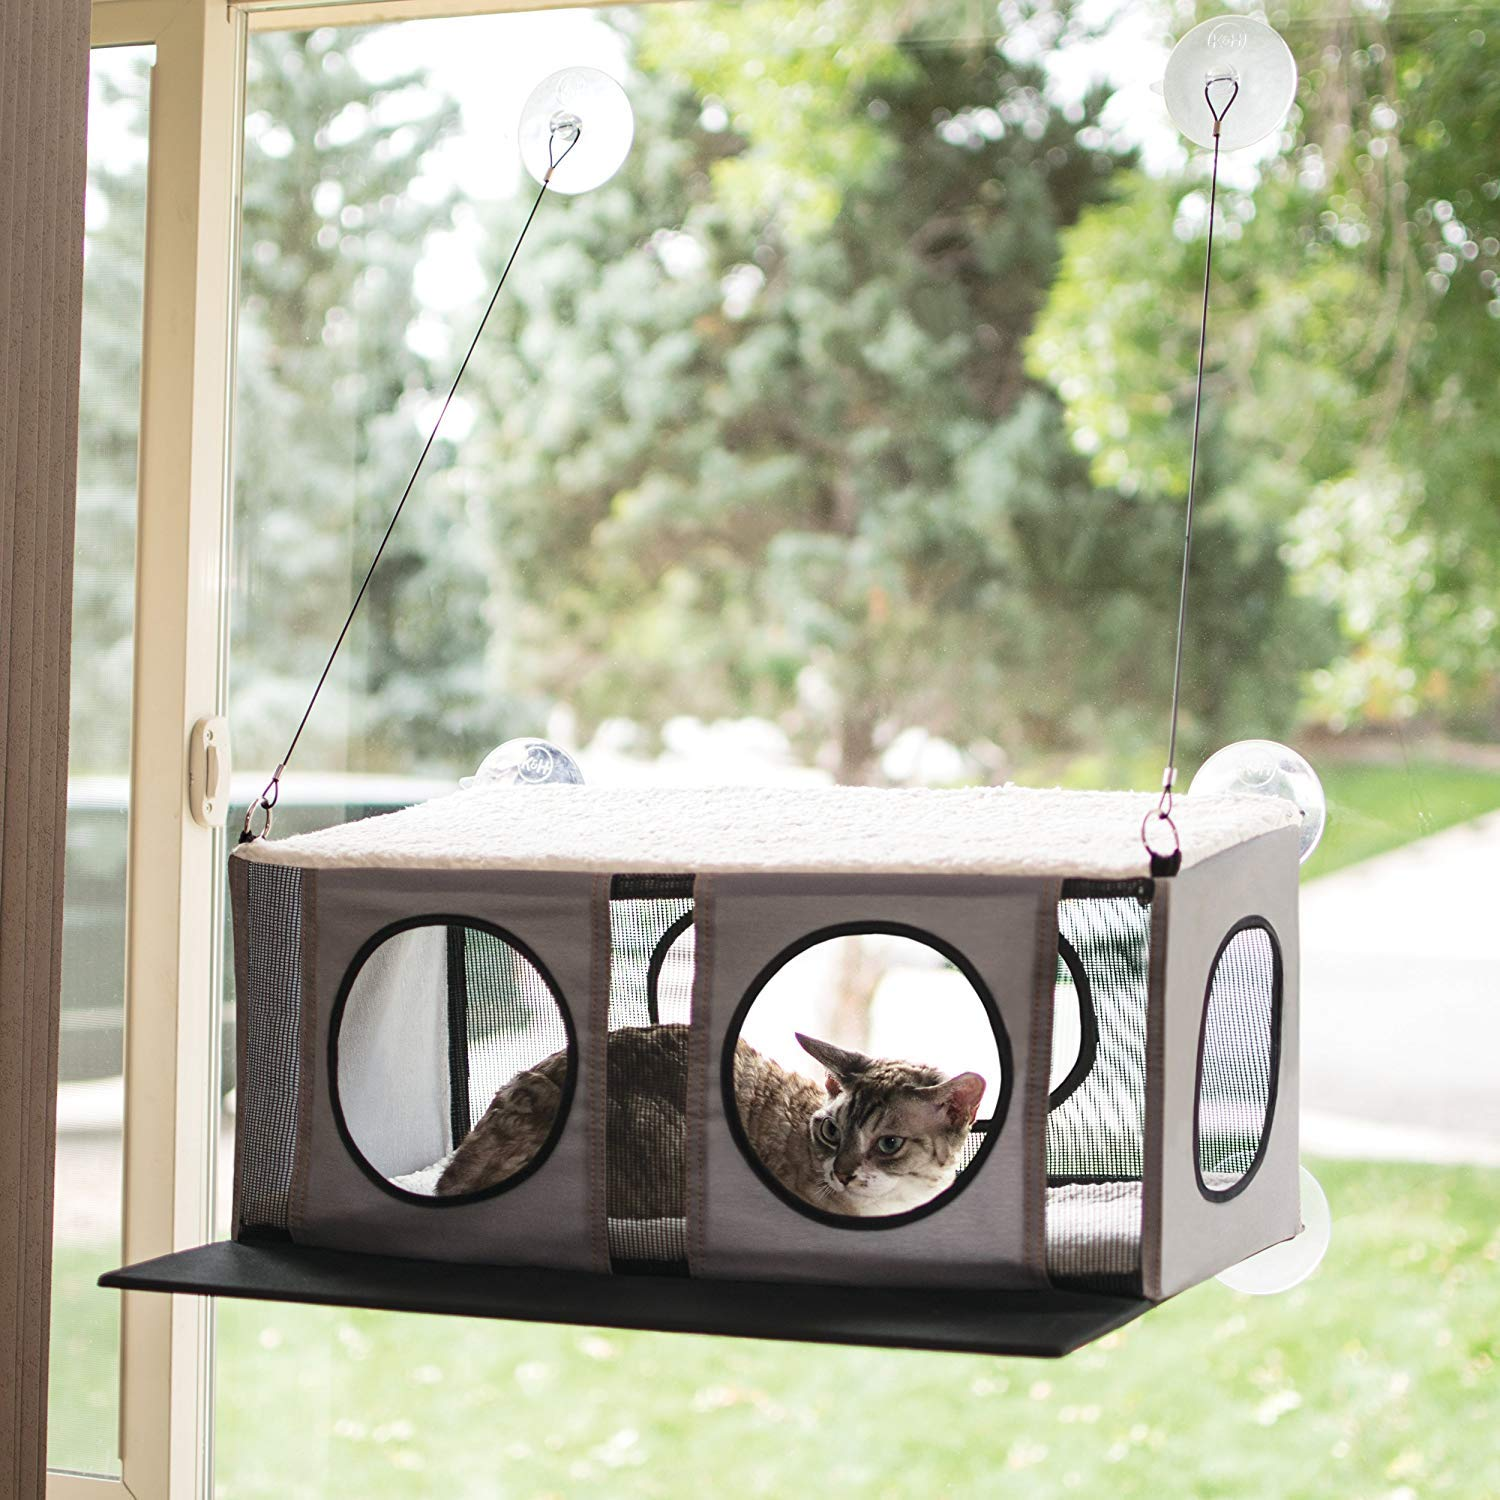 K&H PET PRODUCTS EZ Mount Penthouse Gray/Black 19'' x 23'' x 9.5'' Kitty Sill by K&H PET PRODUCTS